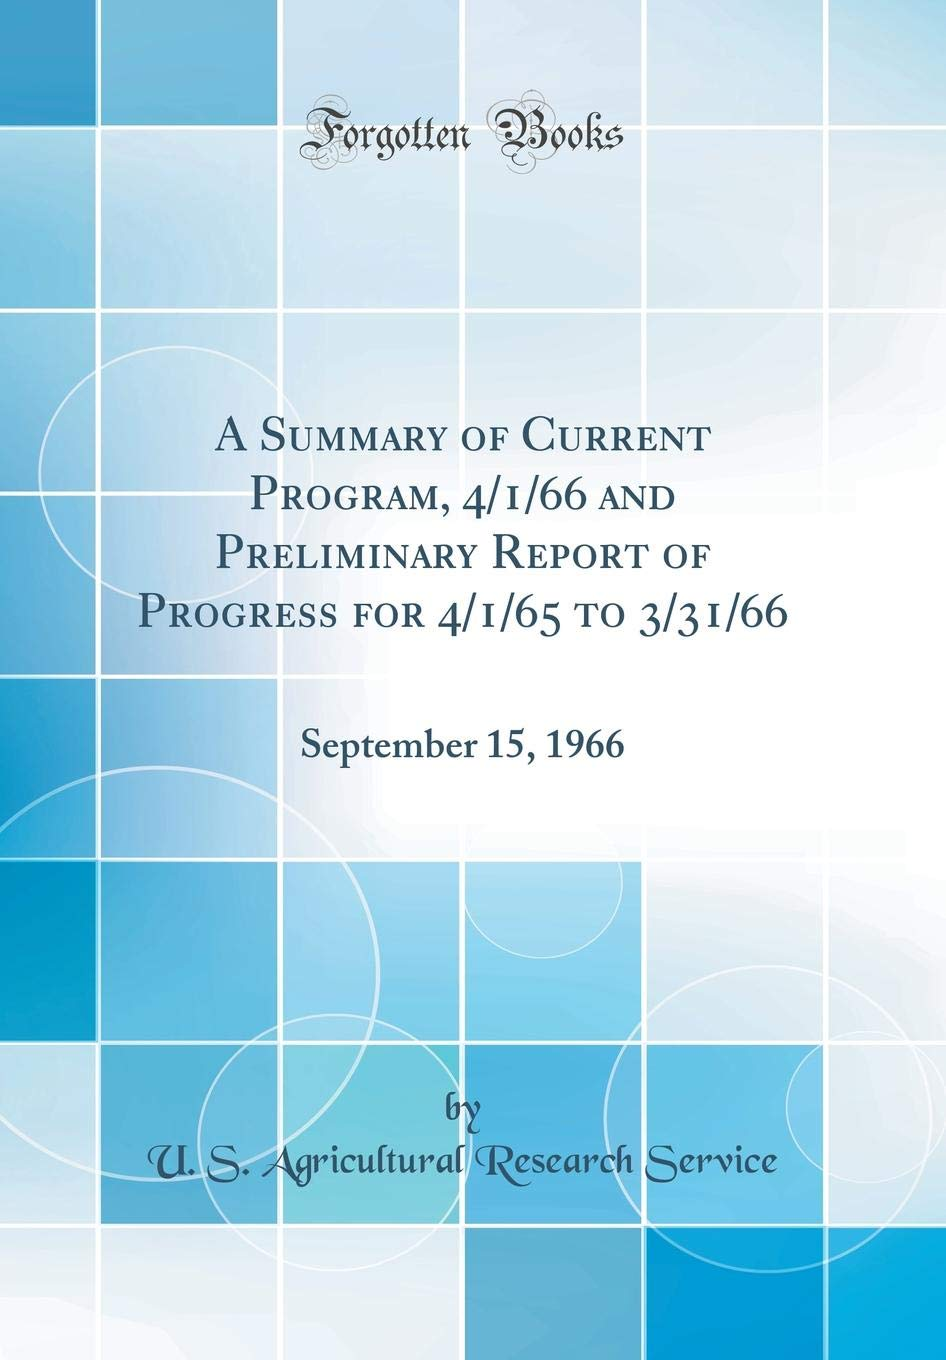 Download A Summary of Current Program, 4/1/66 and Preliminary Report of Progress for 4/1/65 to 3/31/66: September 15, 1966 (Classic Reprint) pdf epub